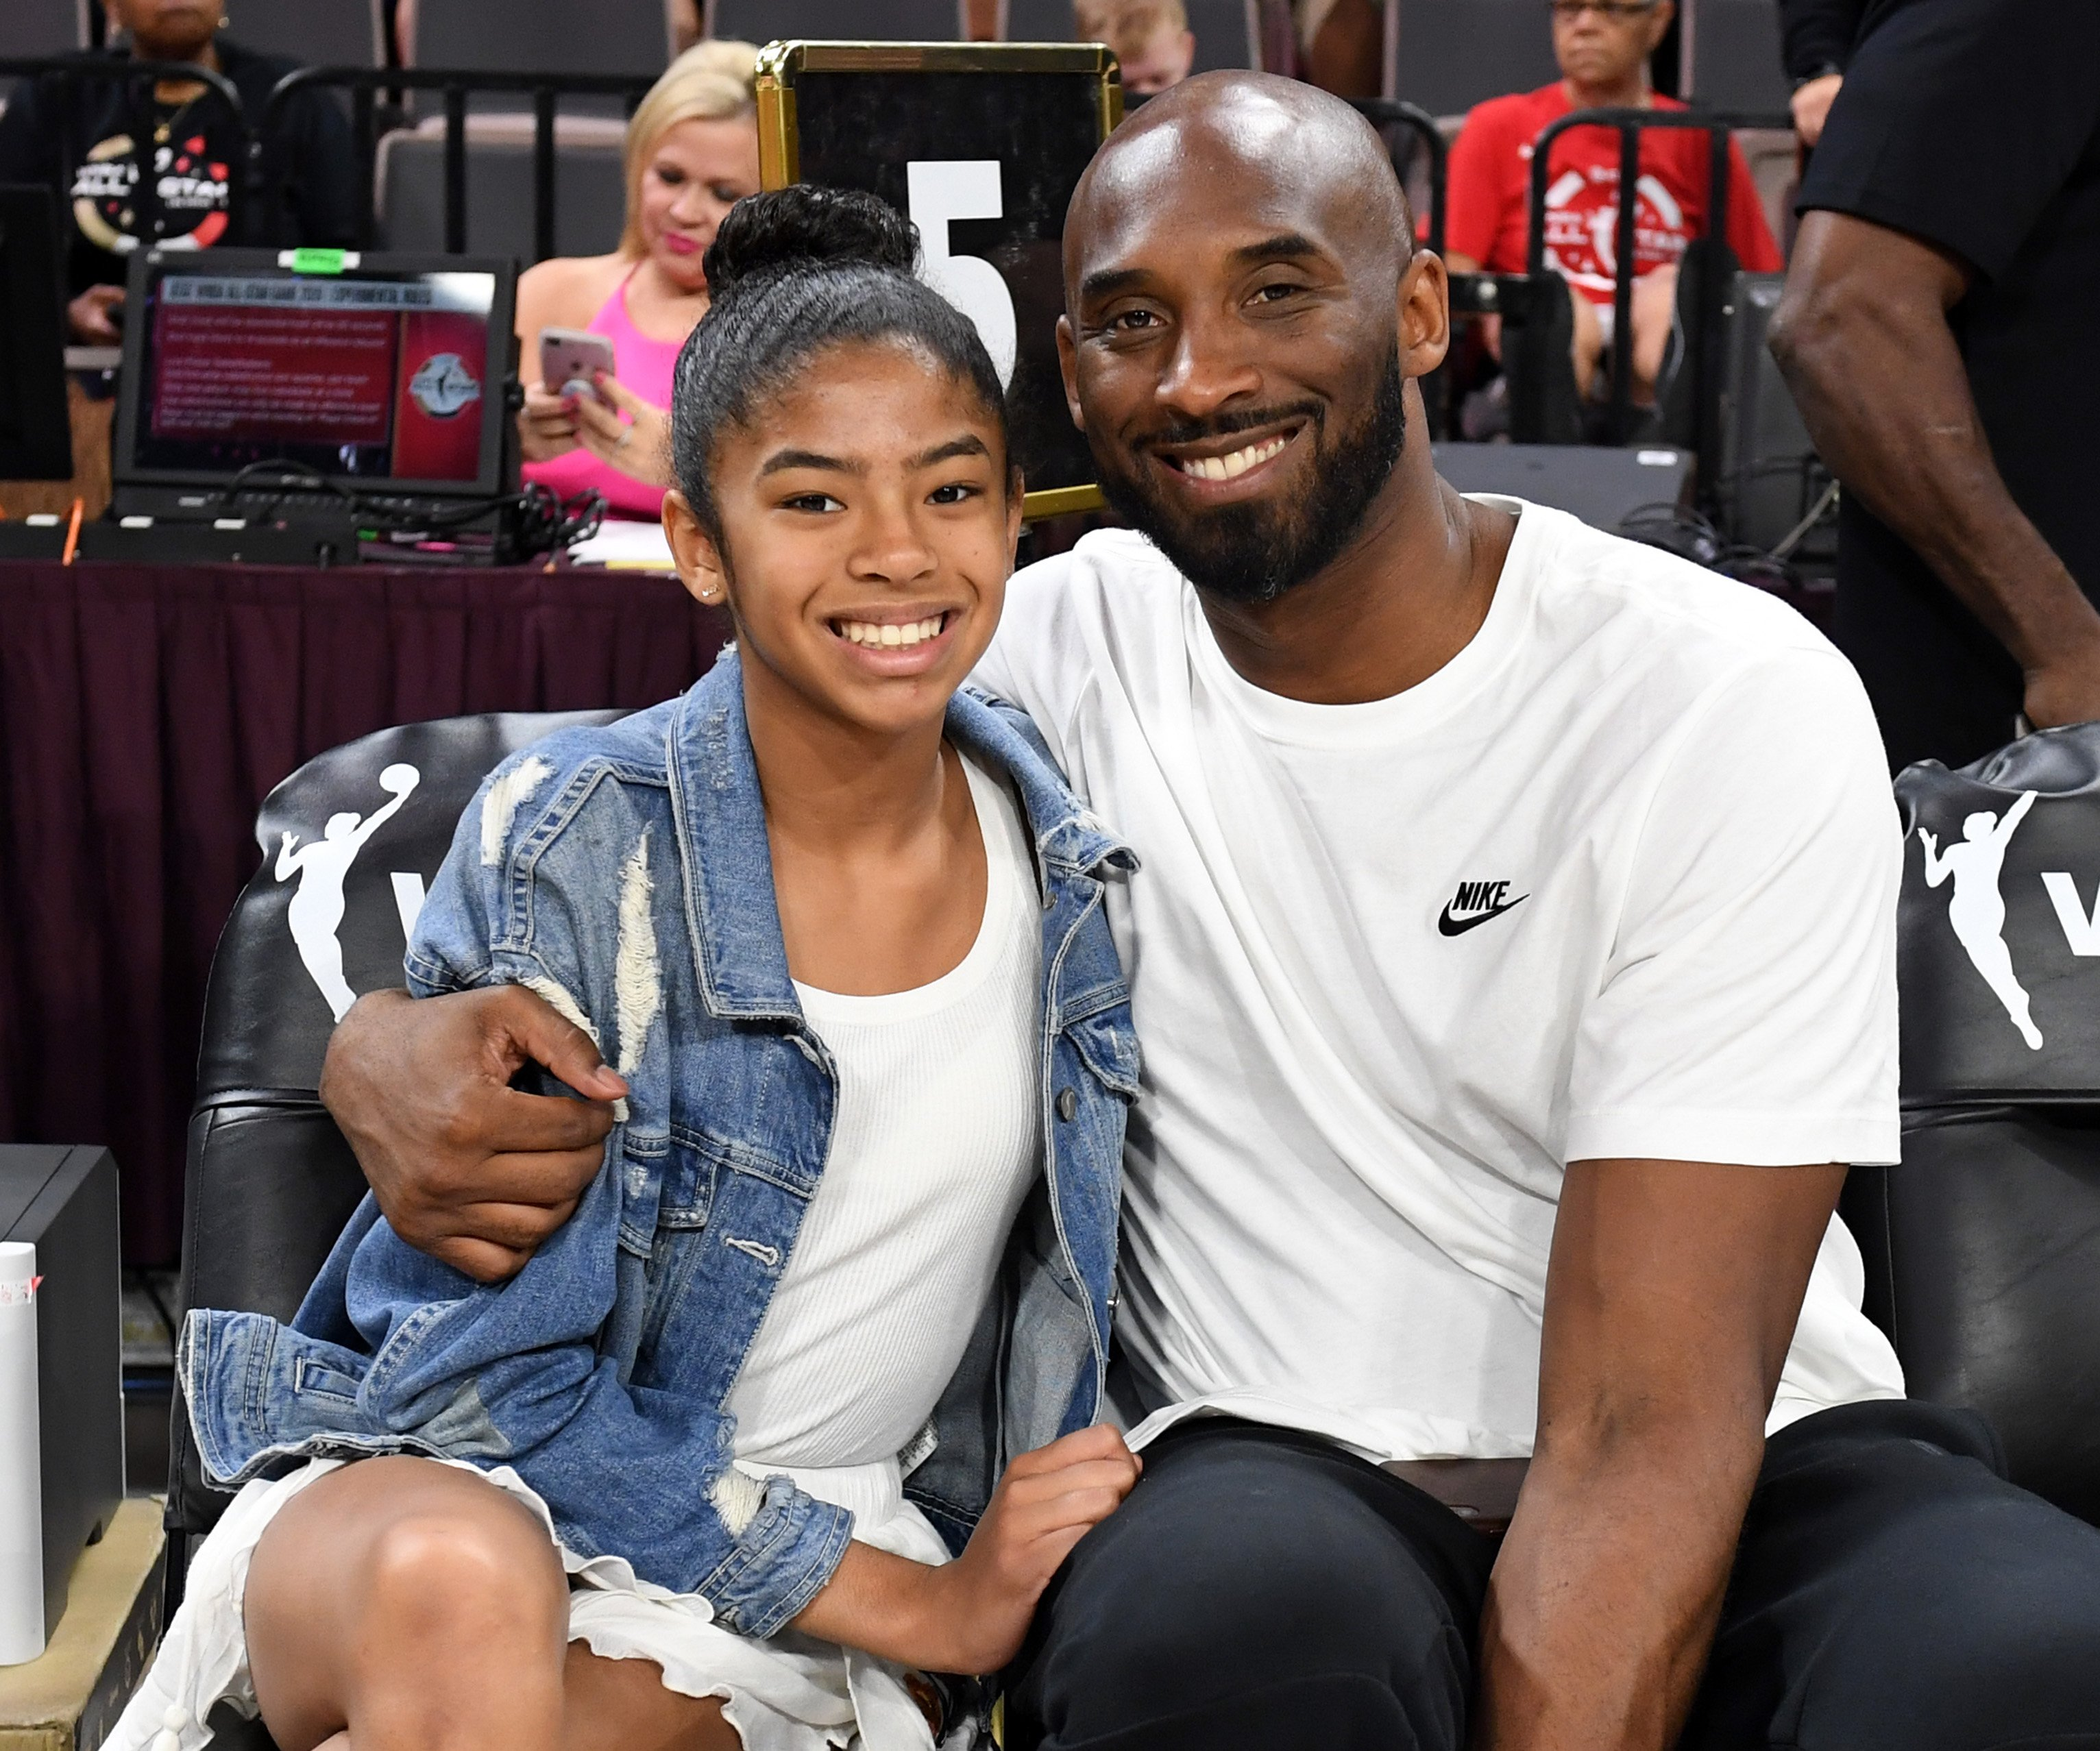 13-year-old Gianna and Kobe Bryant at the WNBA All-Star Game in July 2019 | Photo: Getty Images